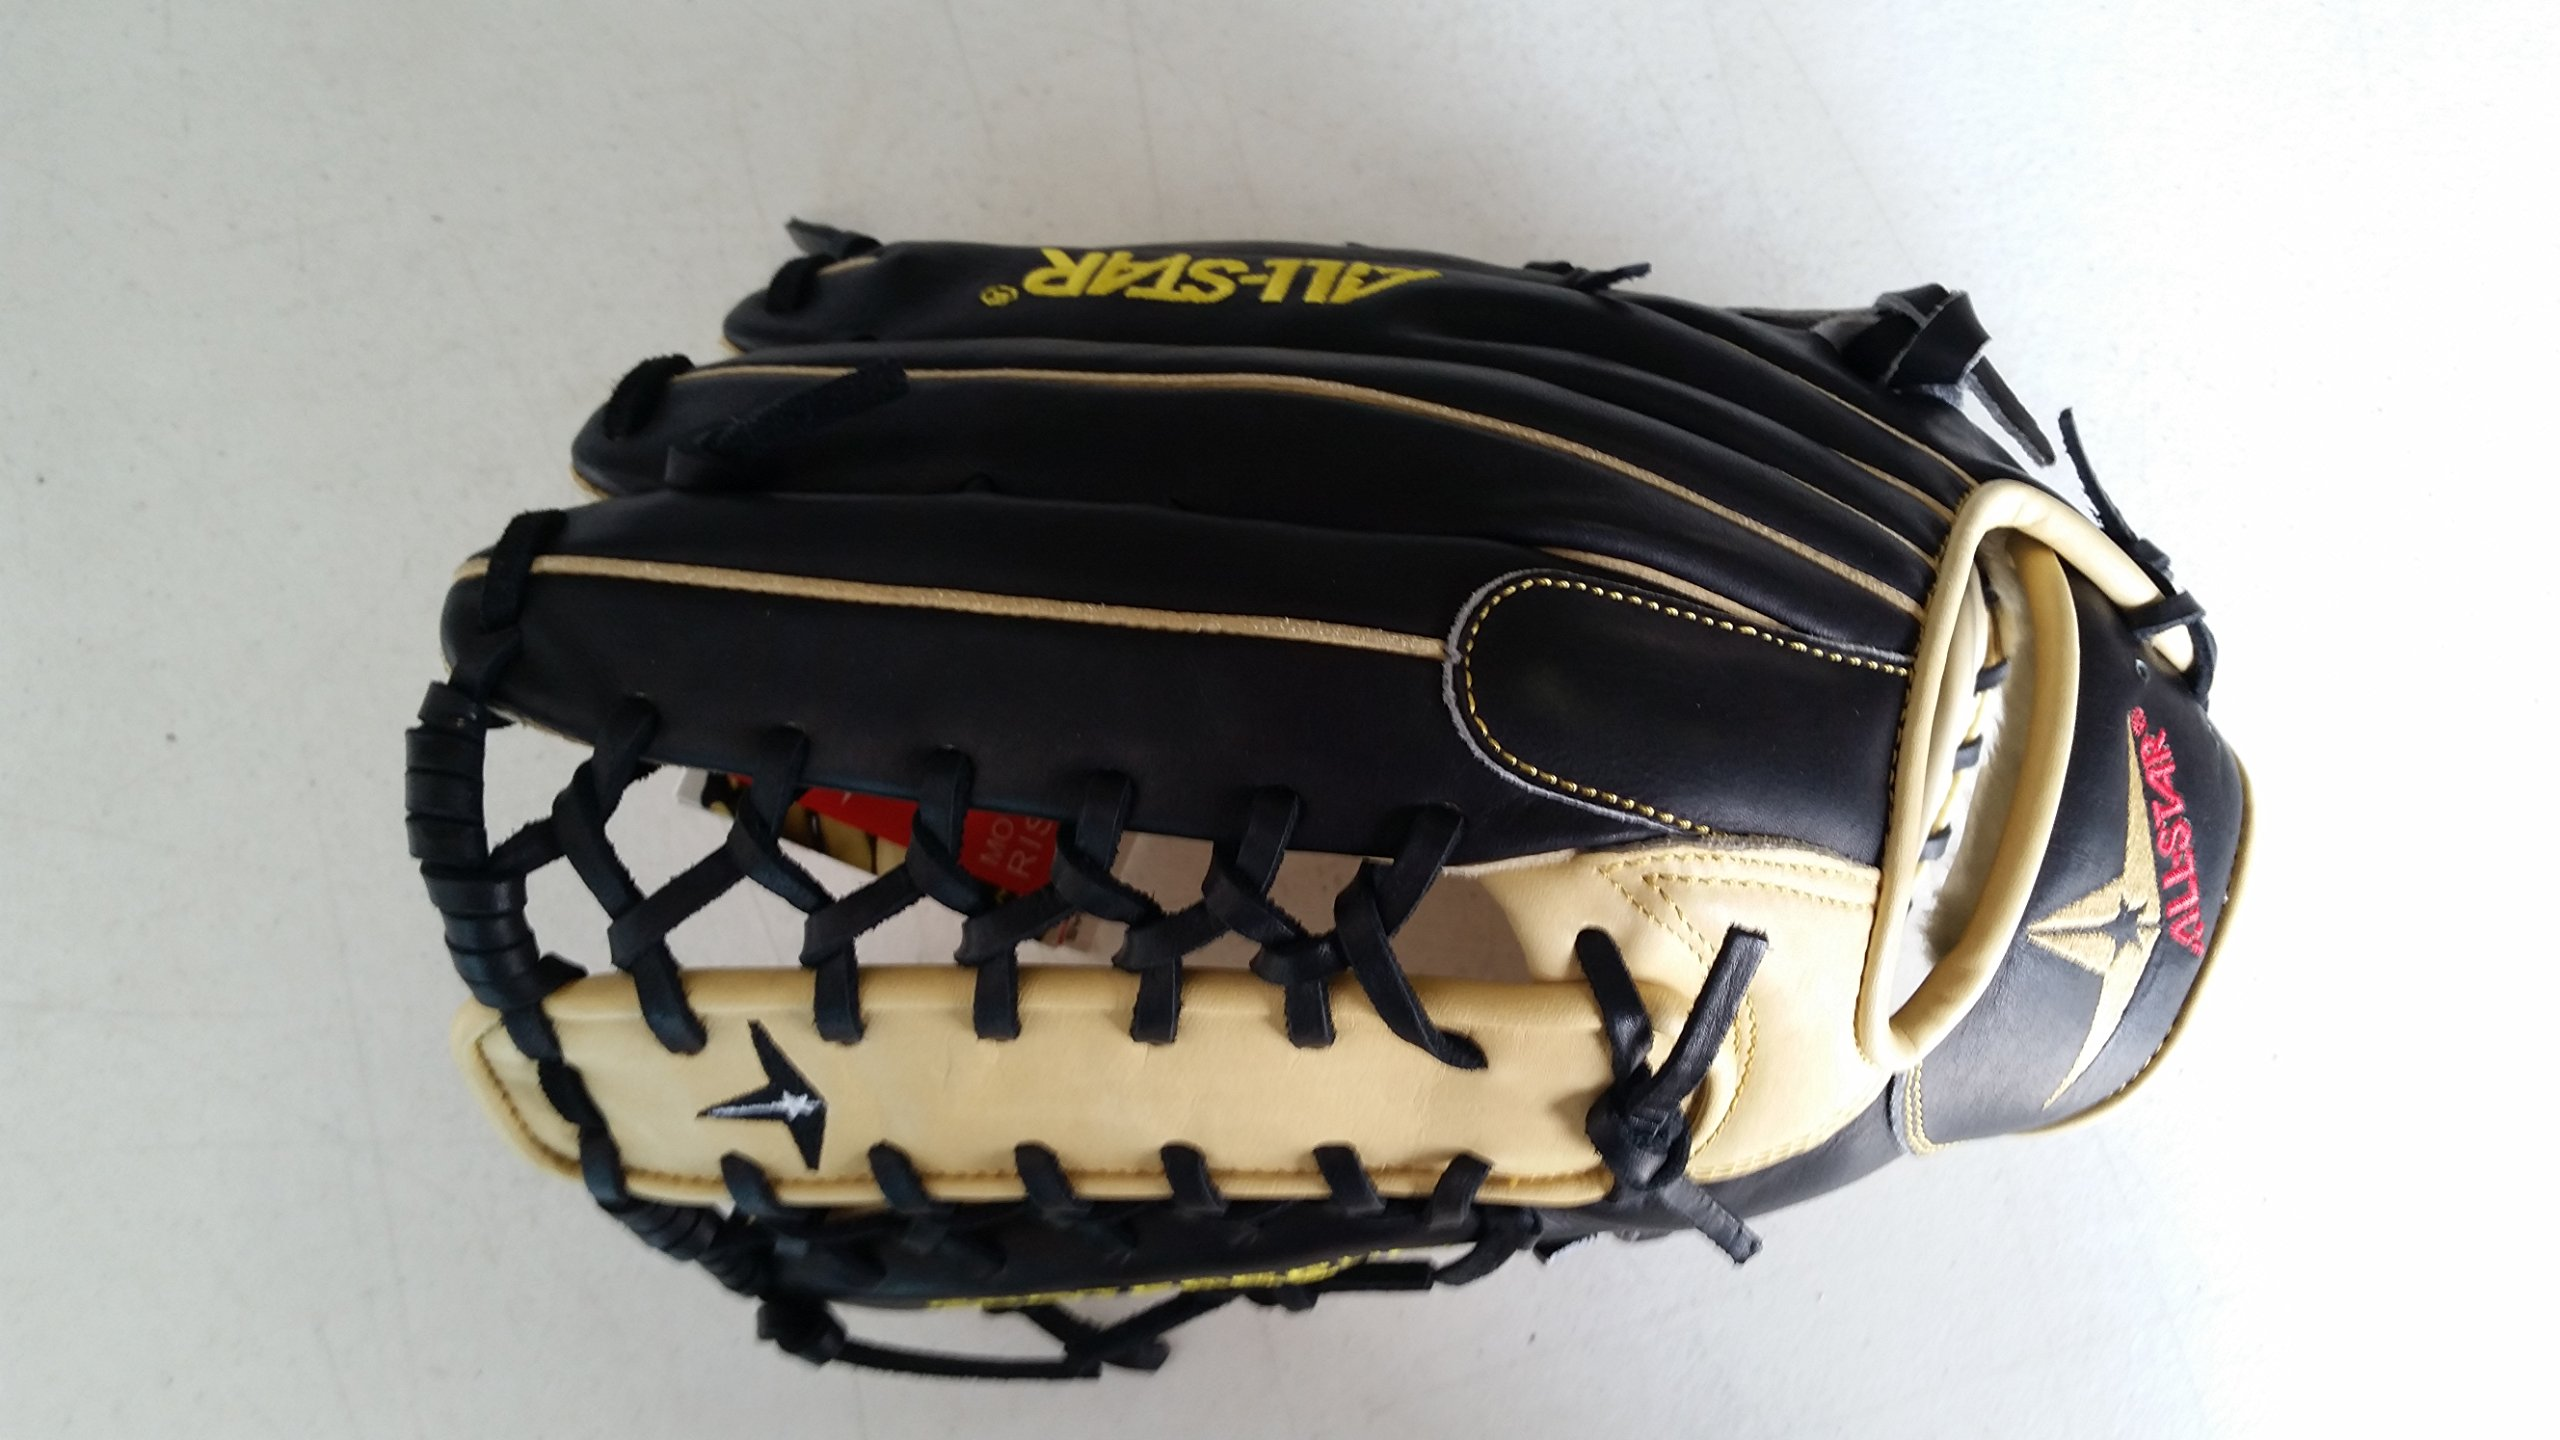 All-Star System 7 Series 13'' Baseball Firstbase Mitt by All star